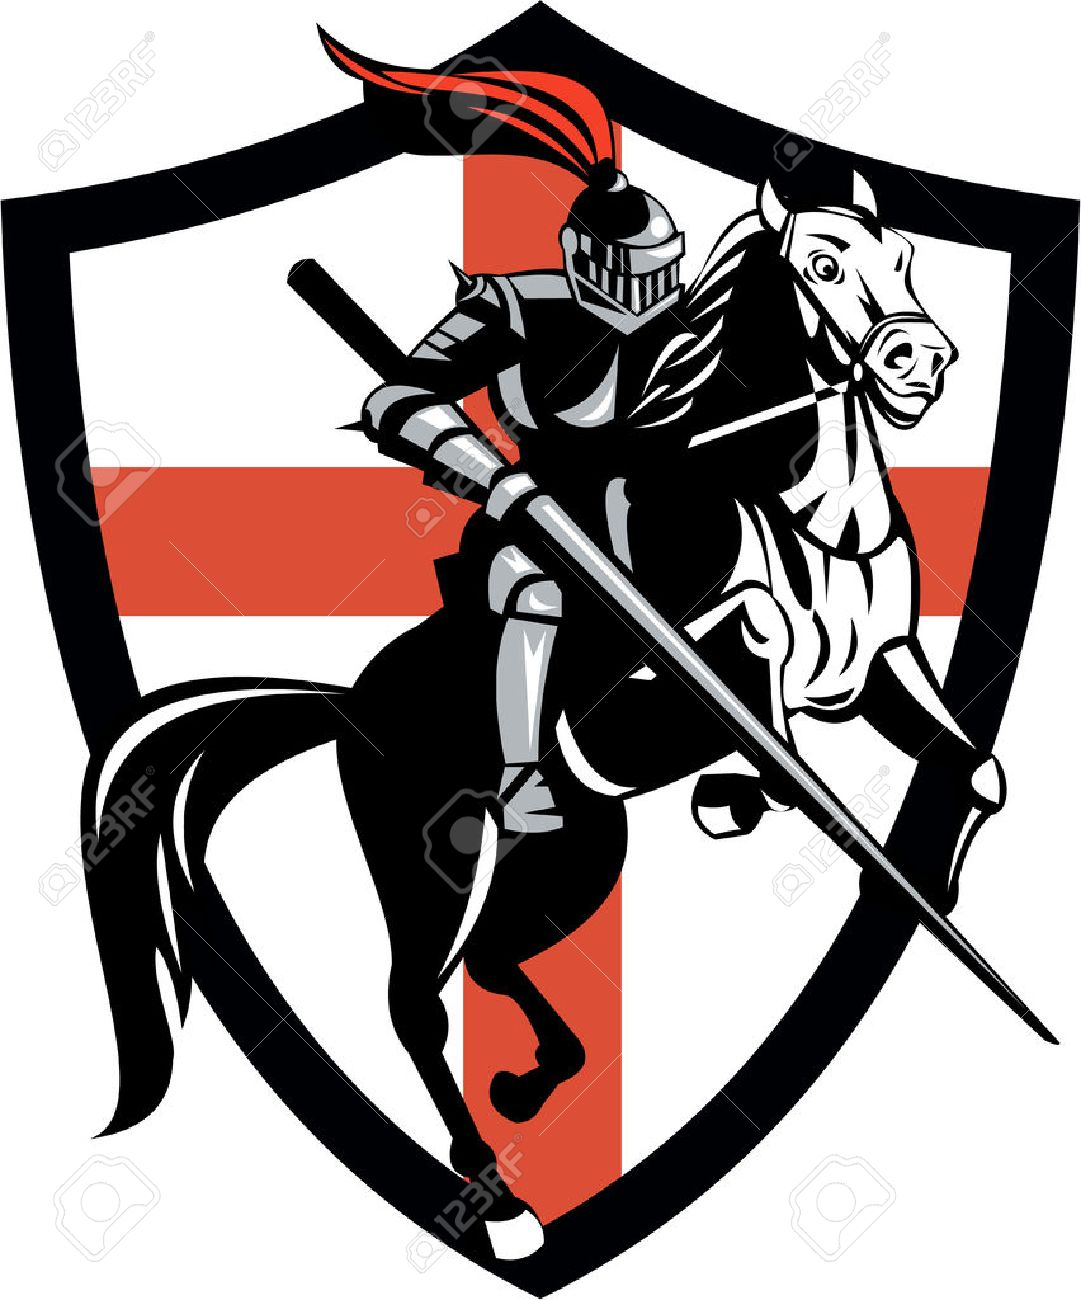 Illustration of knight in full armor riding a horse armed with lance and England English flag in background done in retro style. Stock Vector - 25967916